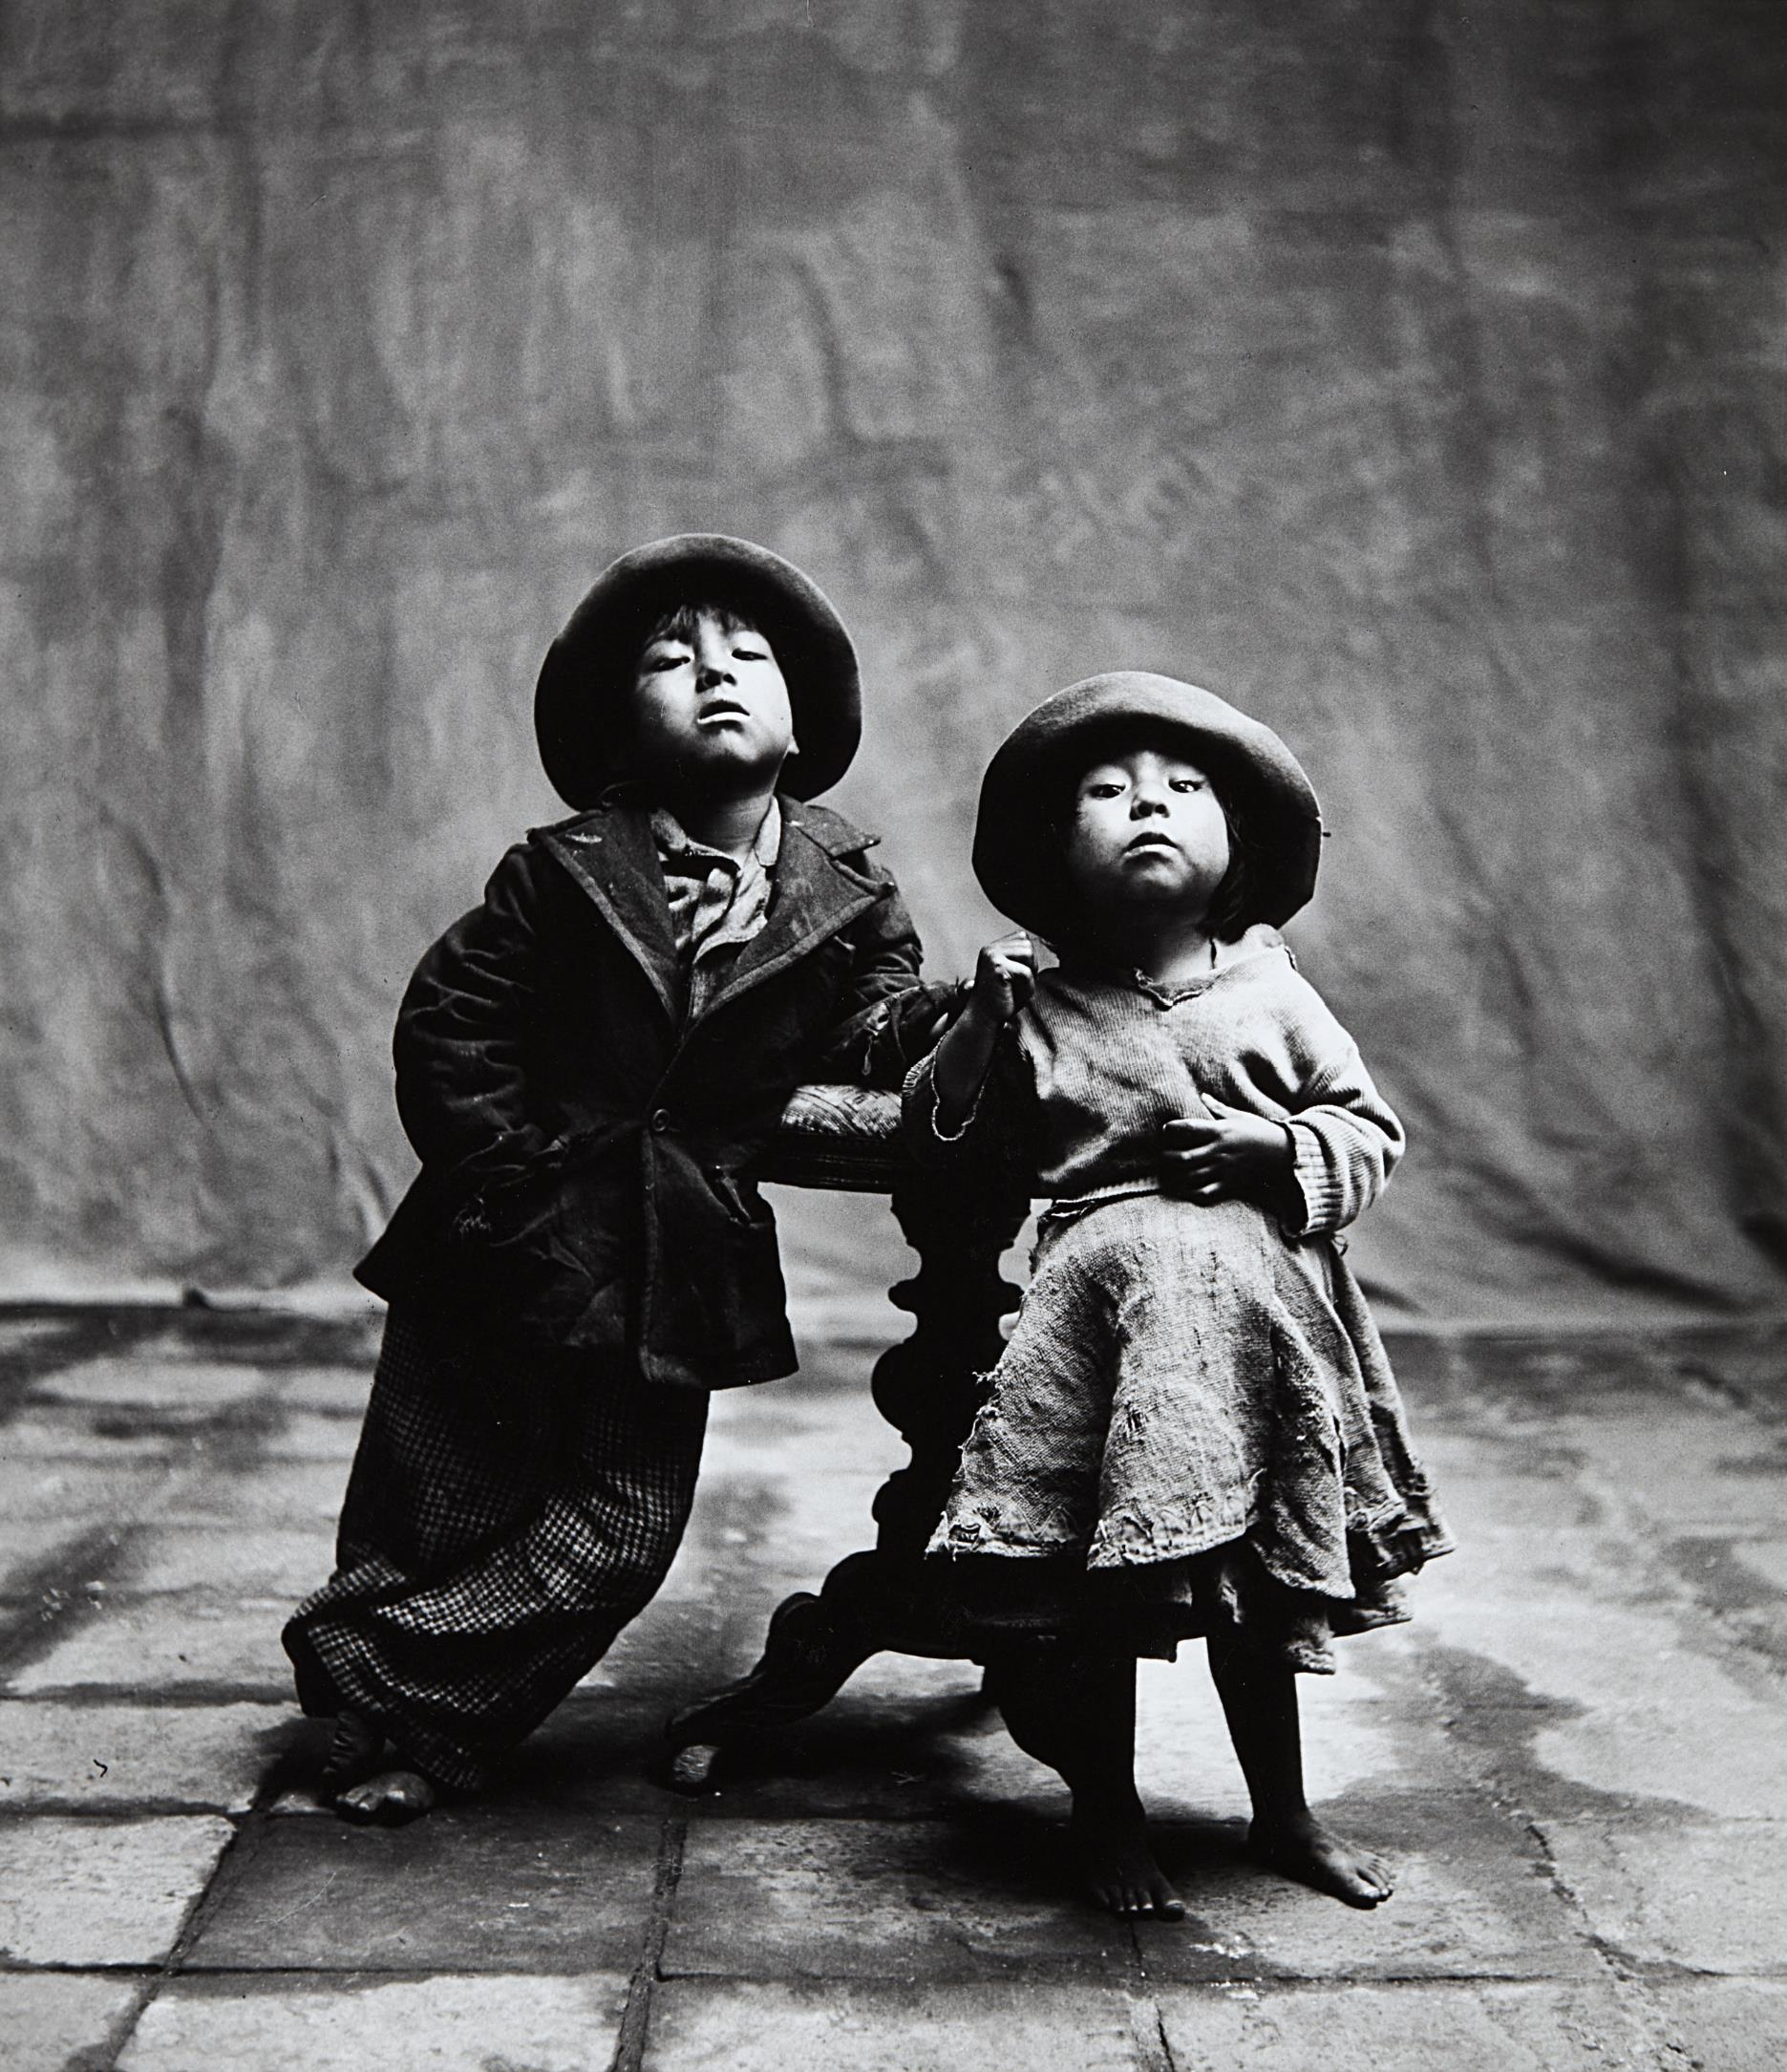 Irving Penn-Cuzco Children, Peru, December-1948